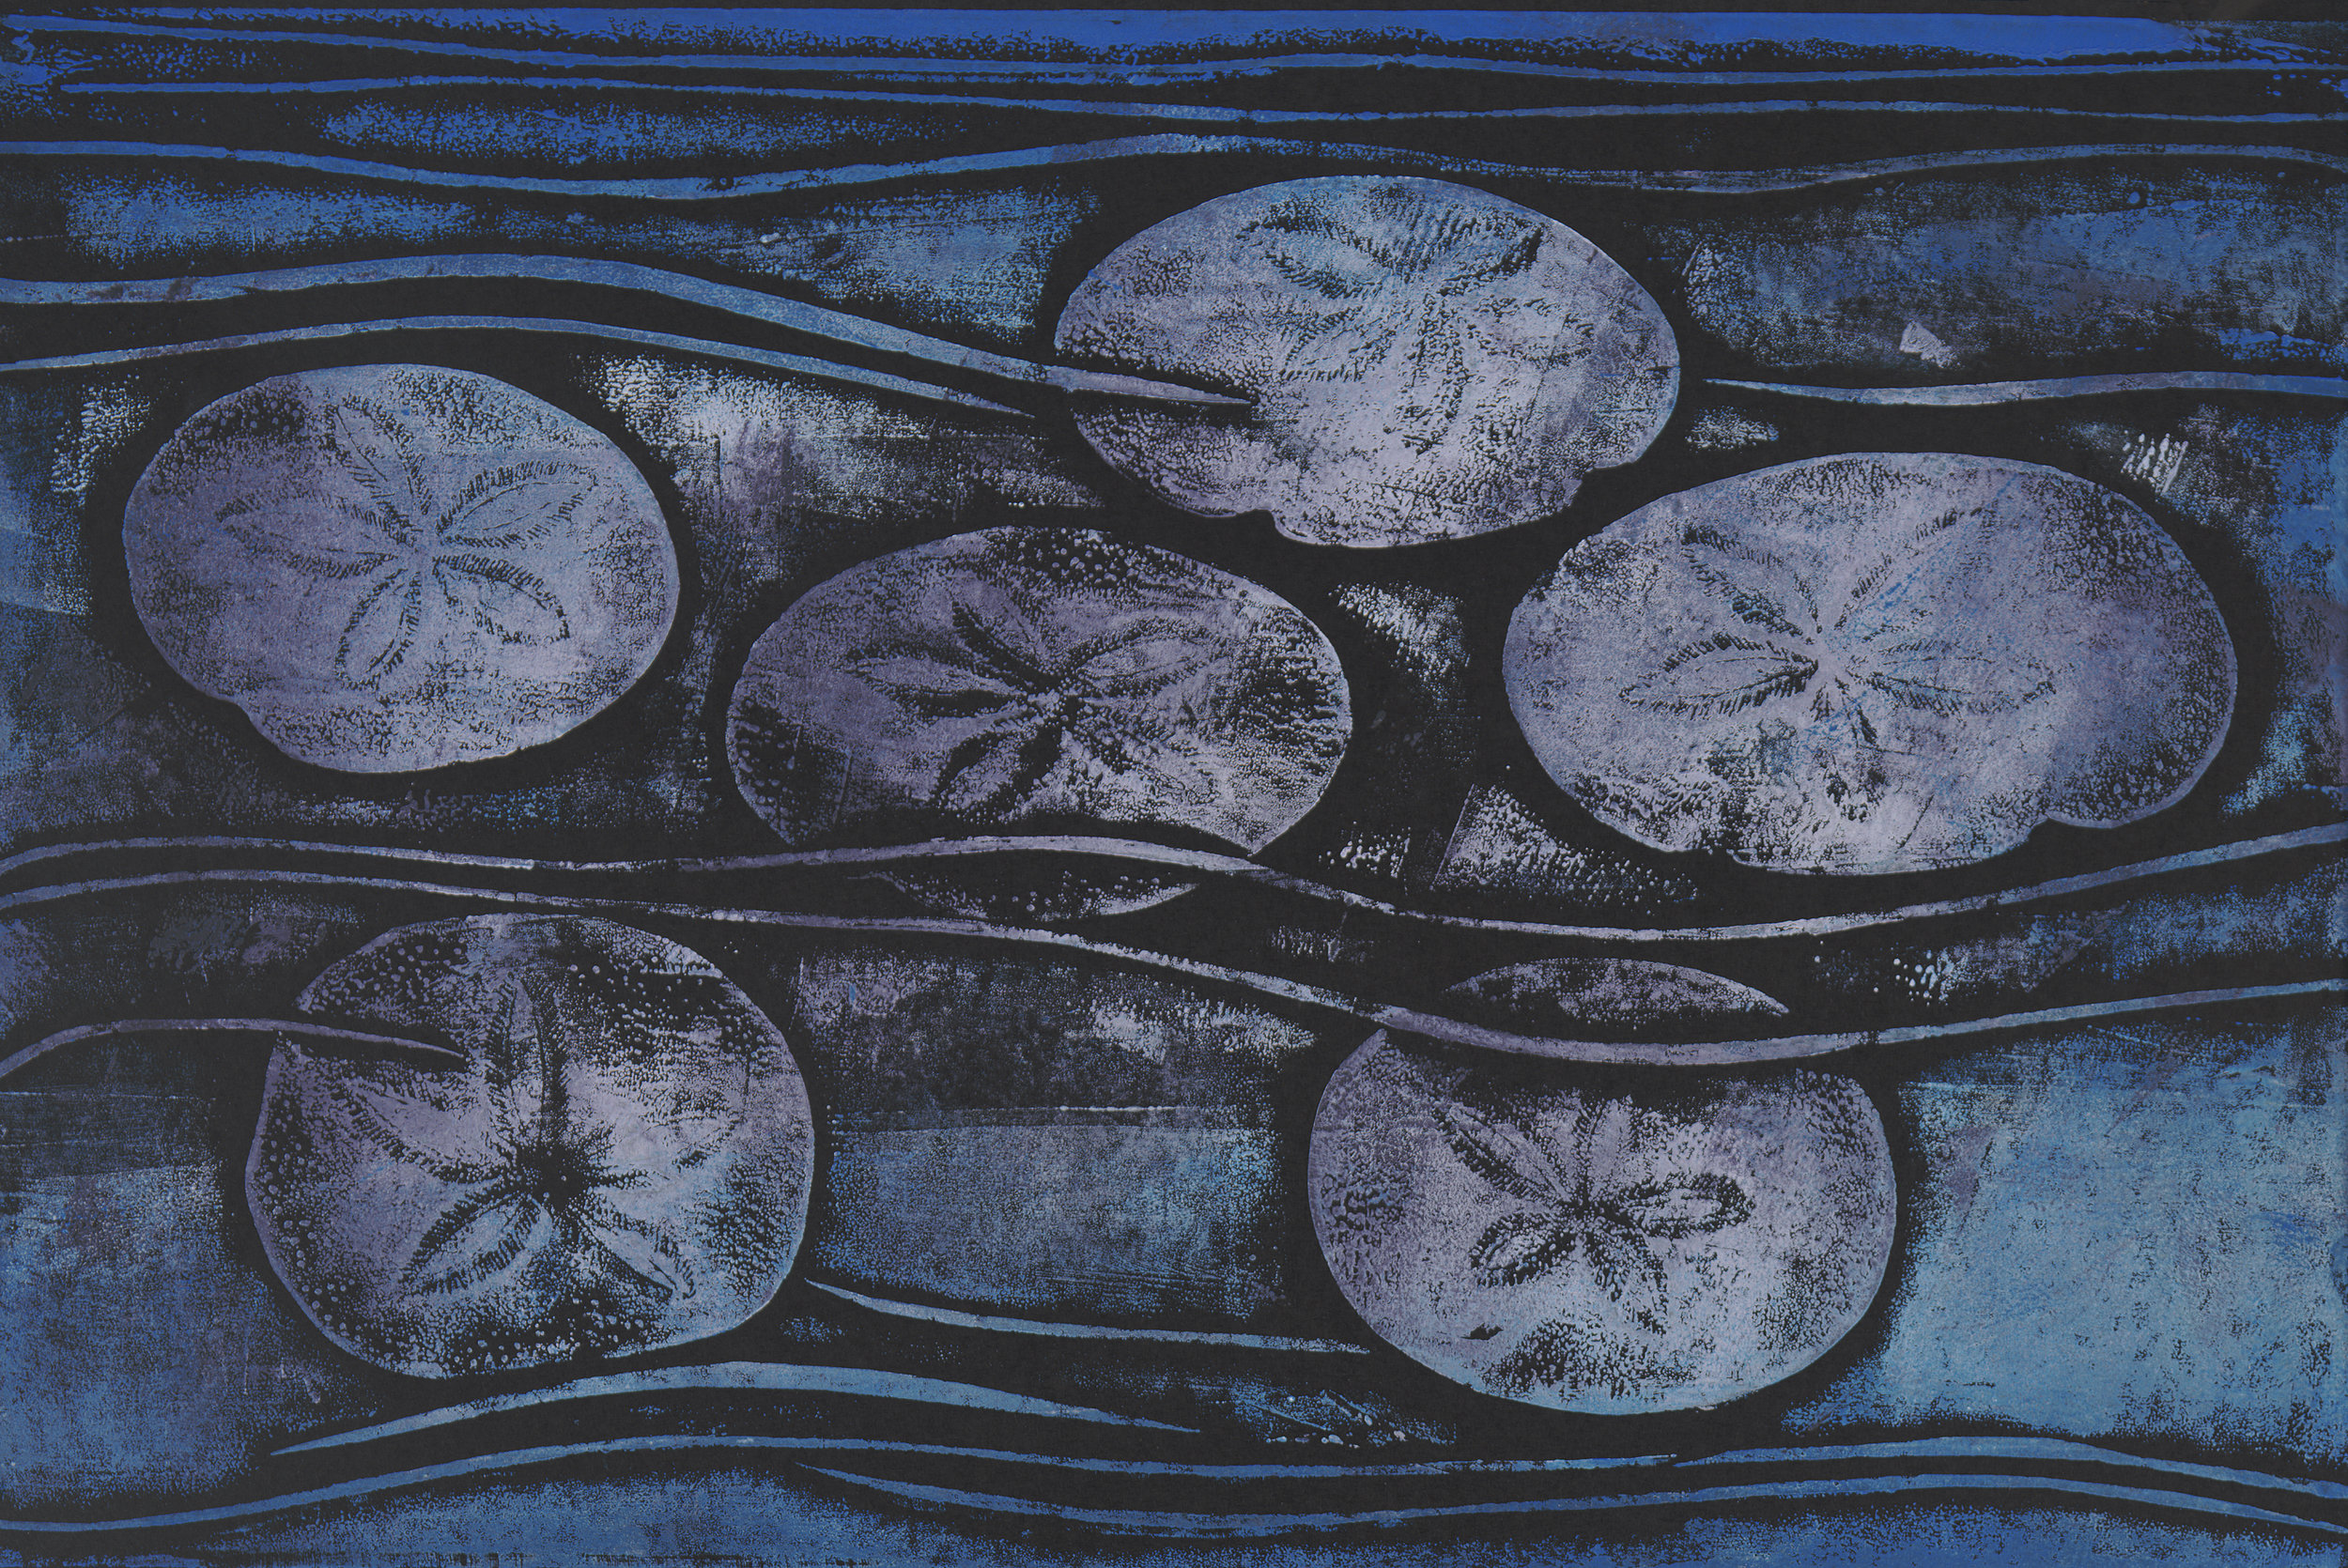 Shore Sand Dollars - Hand Rubbed Collograph